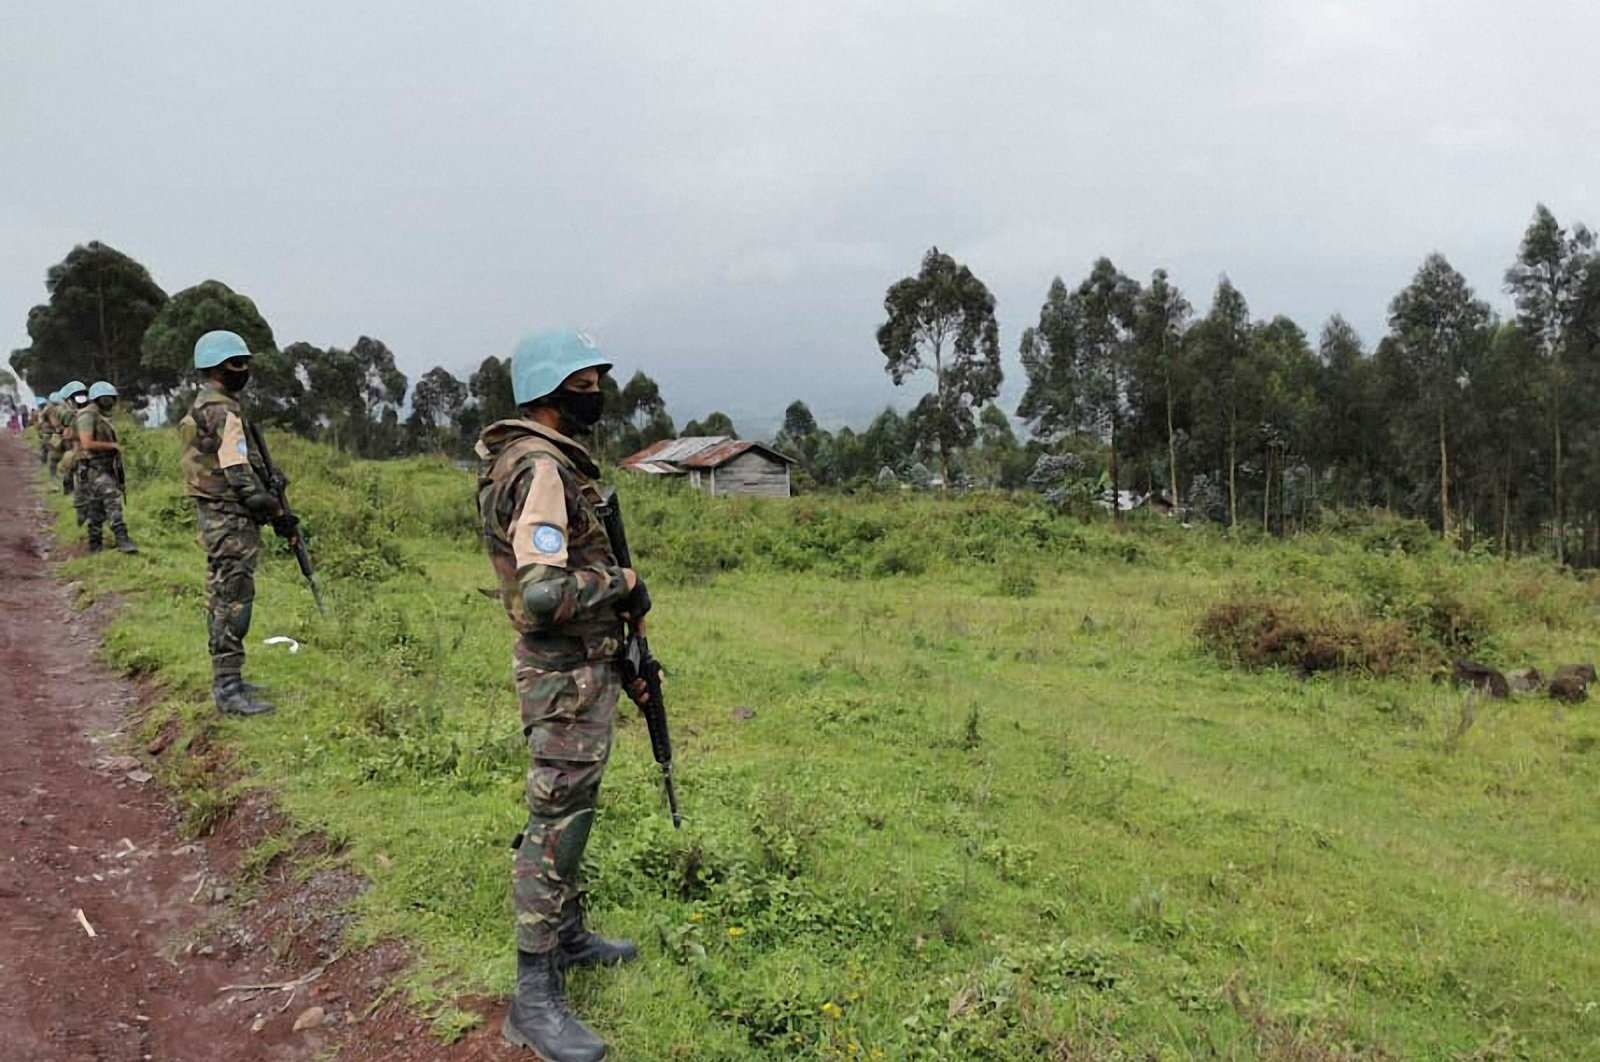 Moroccan soldiers of the MONUSCO (United Nations Organization Stabilization Mission in the DR Congo) patrol the road in the Kibumba area in the Virunga National Park, 25 kilometers (15.5 miles) from Goma, Feb. 22, 2021. (AFP Photo)